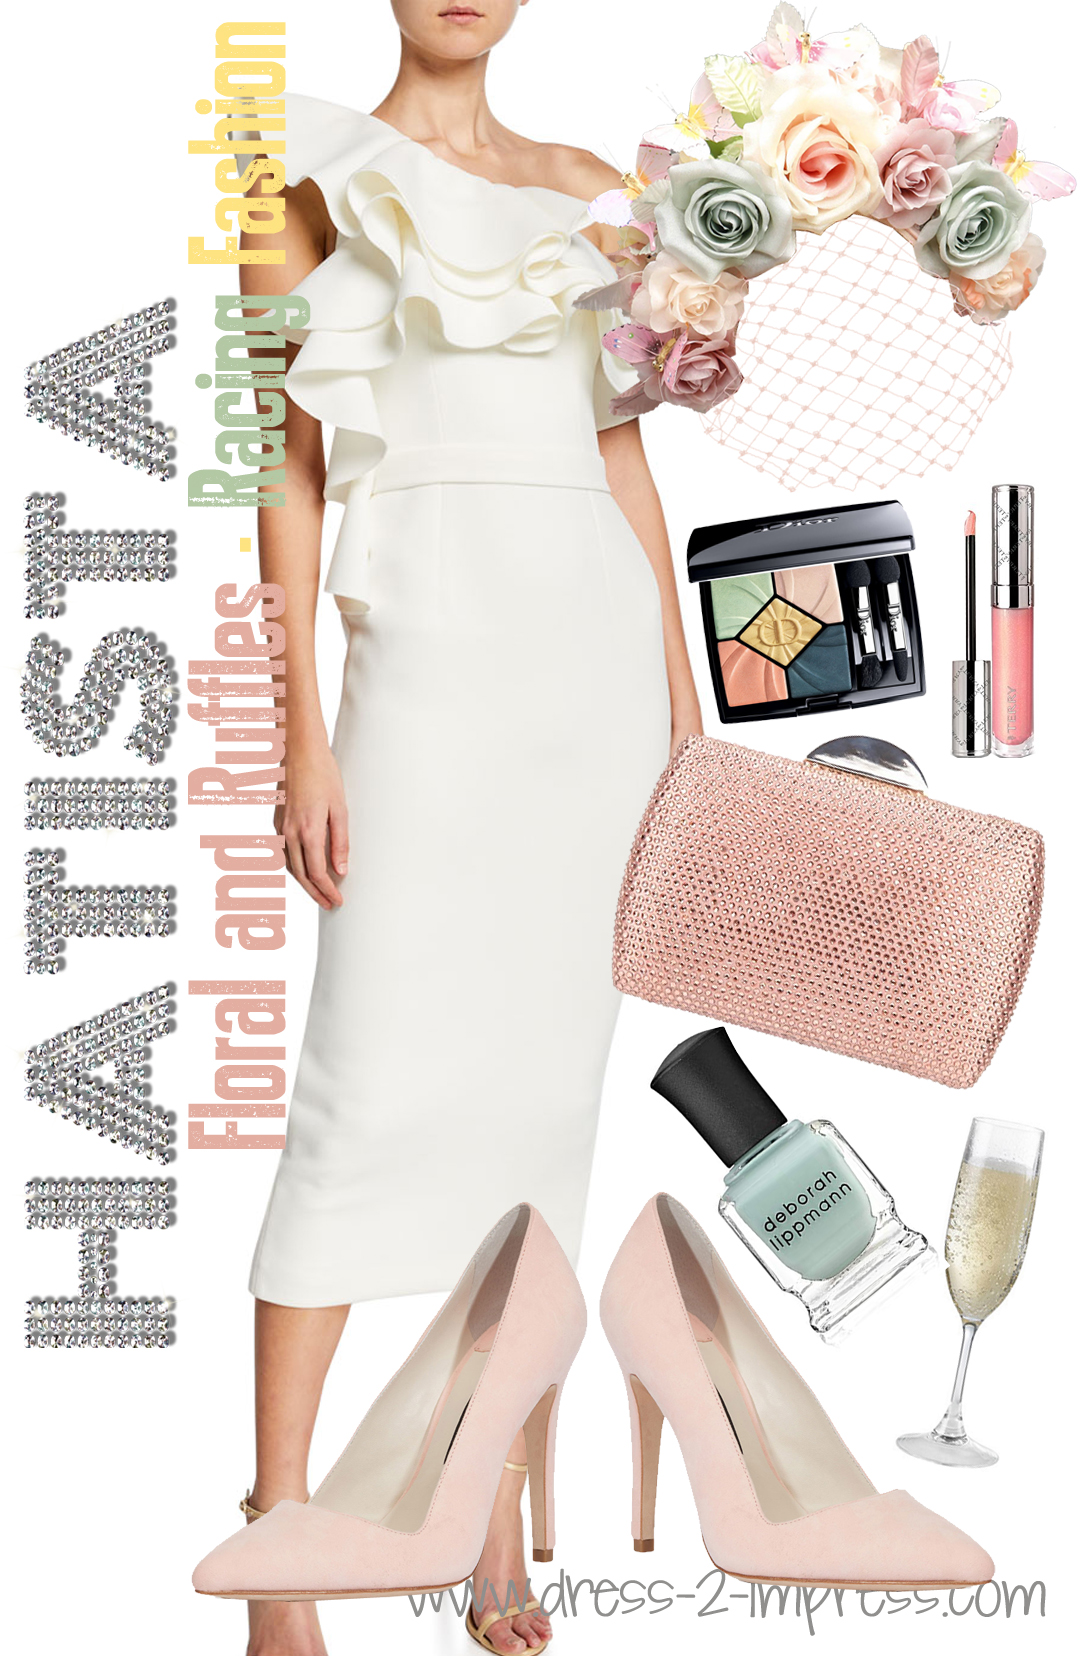 How to Wear Pastels. What to wear with Mint. Pastel Mother of the Bride Outfits. What to wear to the races. What to wear for the Kentucky Derby. What to wear to a Summer Wedding. Floral Hats. Outfit Ideas for the Races. Kentucky Oaks Day Outfits. Pastel Kentucky Derby Outfit.